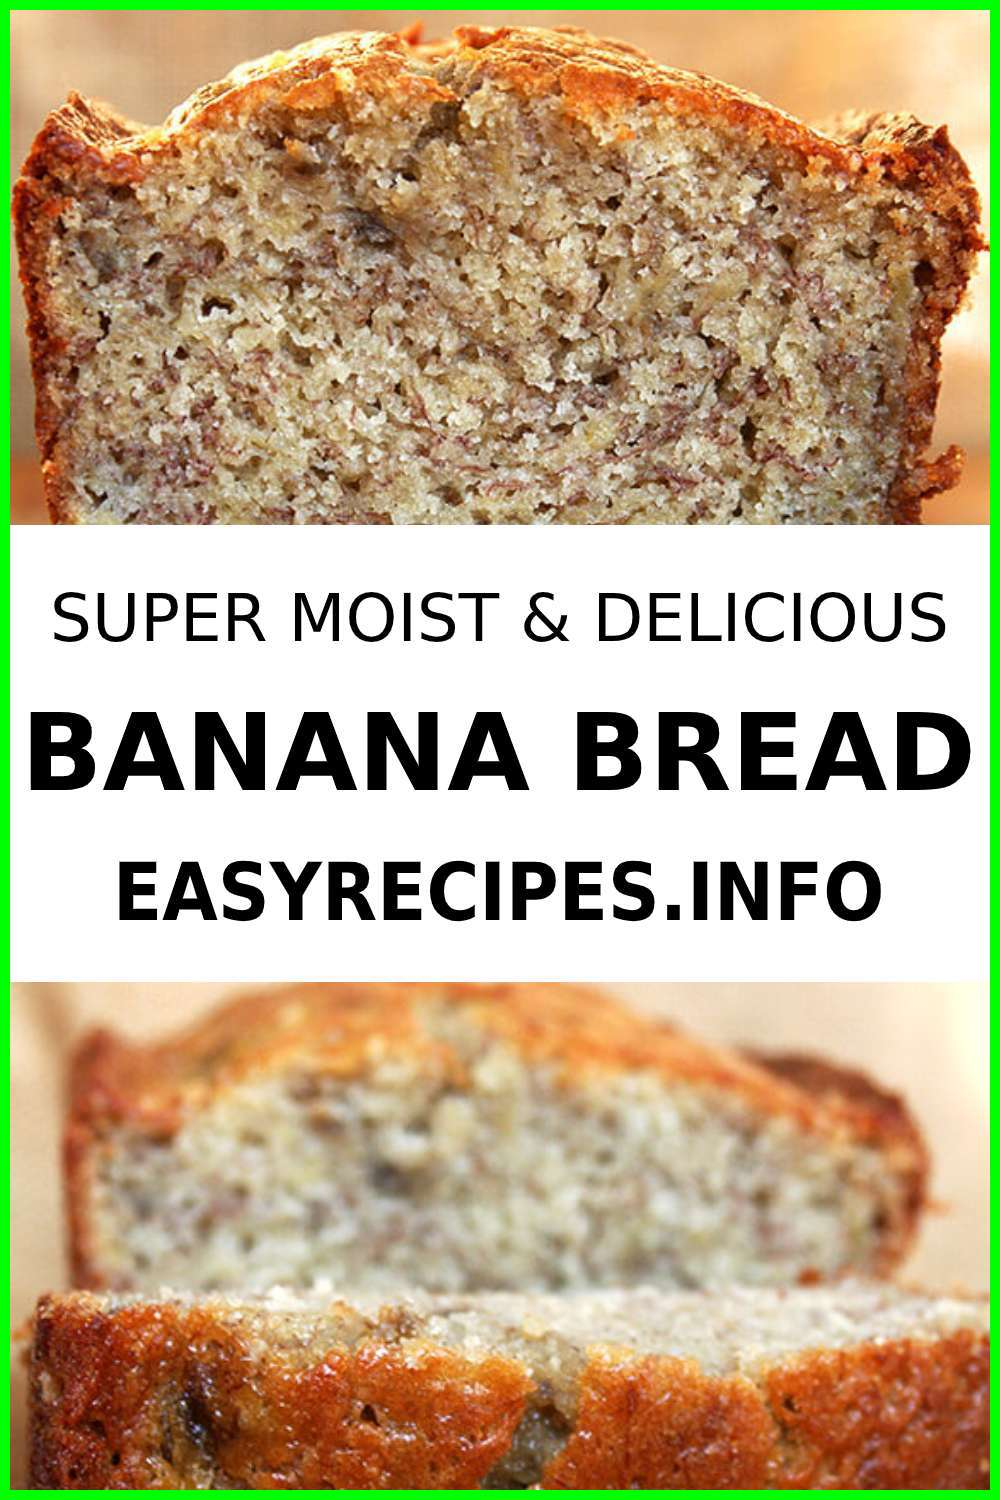 banana bread recipe moist, banana bread recipe moist best, banana bread recipe moist easy, banana bread recipe super moist, banana nut bread recipe moist, Cookies Recipes, the best banana bread recipe moist, best banana bread recipe moist, banana bread recipe moist sour cream, banana bread recipe moist healthy, banana bread recipe moist chocolate chip, banana bread recipe moist apple sauce, banana bread recipe moist greek yogurtn starbucks banana bread recipe moist, banana bread recipe moist walnuts, simple banana bread recipe moist, banana bread recipe moist buttermilk, cream cheese banana bread recipe moistn banana bread recipe moist pioneer woman, amish banana bread recipe moist, banana bread recipe moist brown sugar, banana bread recipe moist videos, vegan banana bread recipe moist, banana bread recipe moist oil, chocolate banana bread recipe moist, 2 banana bread recipe moist, banana bread recipe moist cinnamon, banana bread recipe moist muffins, gluten free banana bread recipe moist, blueberry banana bread recipe moist, banana bread recipe moist easy healthy, banana bread recipe moist mayo, banana bread recipe moist bundt, banana bread recipe moist cake mix, banana bread recipe banana bread recipe moist, banana bread recipe moist pudding